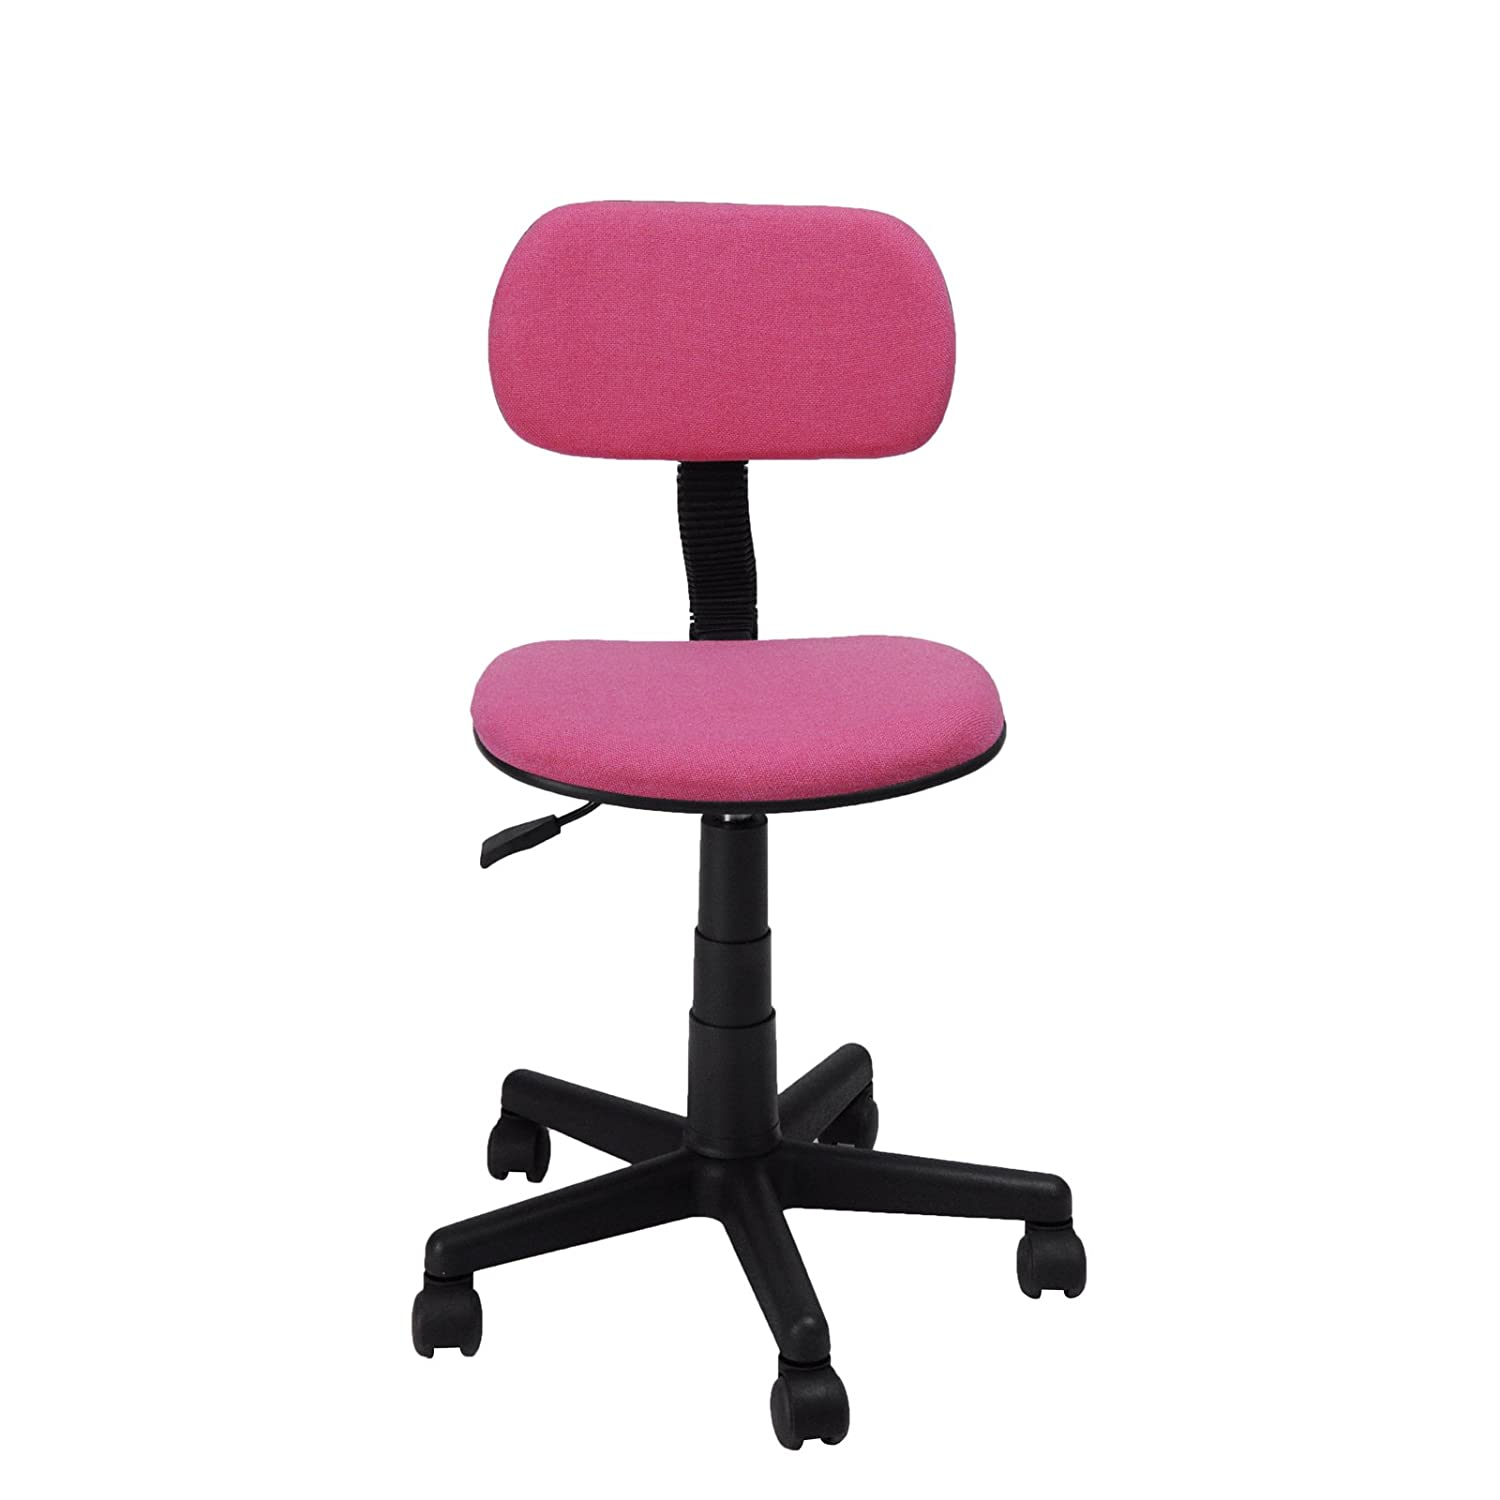 Pink Adjustable fice puter Chair for Kids Room Amazon